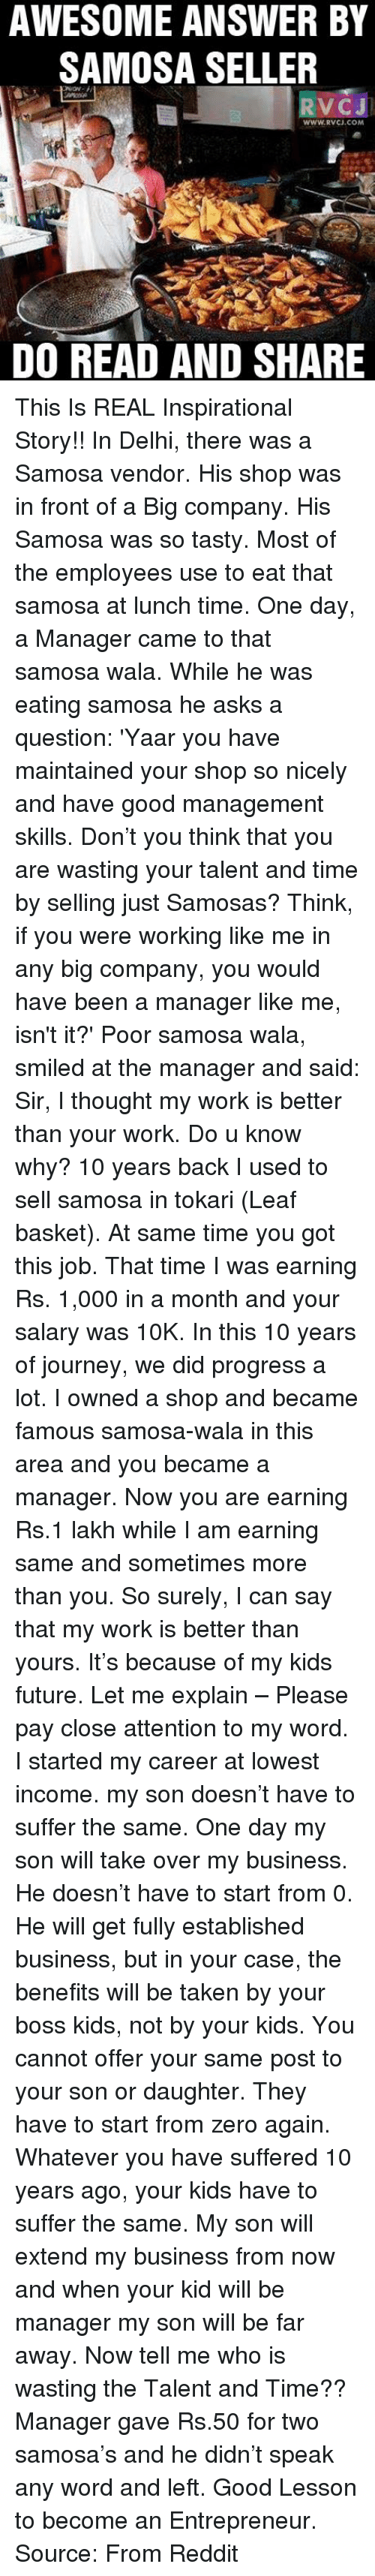 So Tasty: AWESOME ANSWER BY  SAMOSA SELLER  RVCJ  DO READ AND SHARE This Is REAL Inspirational Story!!  In Delhi, there was a Samosa vendor. His shop was in front of a Big company. His Samosa was so tasty. Most of the employees use to eat that samosa at lunch time.  One day, a Manager came to that samosa wala. While he was eating samosa he asks a question: 'Yaar you have maintained your shop so nicely and have good management skills. Don't you think that you are wasting your talent and time by selling just Samosas? Think, if you were working like me in any big company, you would have been a manager like me, isn't it?'  Poor samosa wala, smiled at the manager and said:  Sir, I thought my work is better than your work. Do u know why? 10 years back I used to sell samosa in tokari (Leaf basket). At same time you got this job. That time I was earning Rs. 1,000 in a month and your salary was 10K.  In this 10 years of journey, we did progress a lot. I owned a shop and became famous samosa-wala in this area and you became a manager.  Now you are earning Rs.1 lakh while I am earning same and sometimes more than you.  So surely, I can say that my work is better than yours. It's because of my kids future.  Let me explain –  Please pay close attention to my word. I started my career at lowest income. my son doesn't have to suffer the same. One day my son will take over my business. He doesn't have to start from 0. He will get fully established business, but in your case, the benefits will be taken by your boss kids, not by your kids.  You cannot offer your same post to your son or daughter. They have to start from zero again. Whatever you have suffered 10 years ago, your kids have to suffer the same.  My son will extend my business from now and when your kid will be manager my son will be far away.  Now tell me who is wasting the Talent and Time??  Manager gave Rs.50 for two samosa's and he didn't speak any word and left.  Good Lesson to become an Entrepreneur. Source: From Red